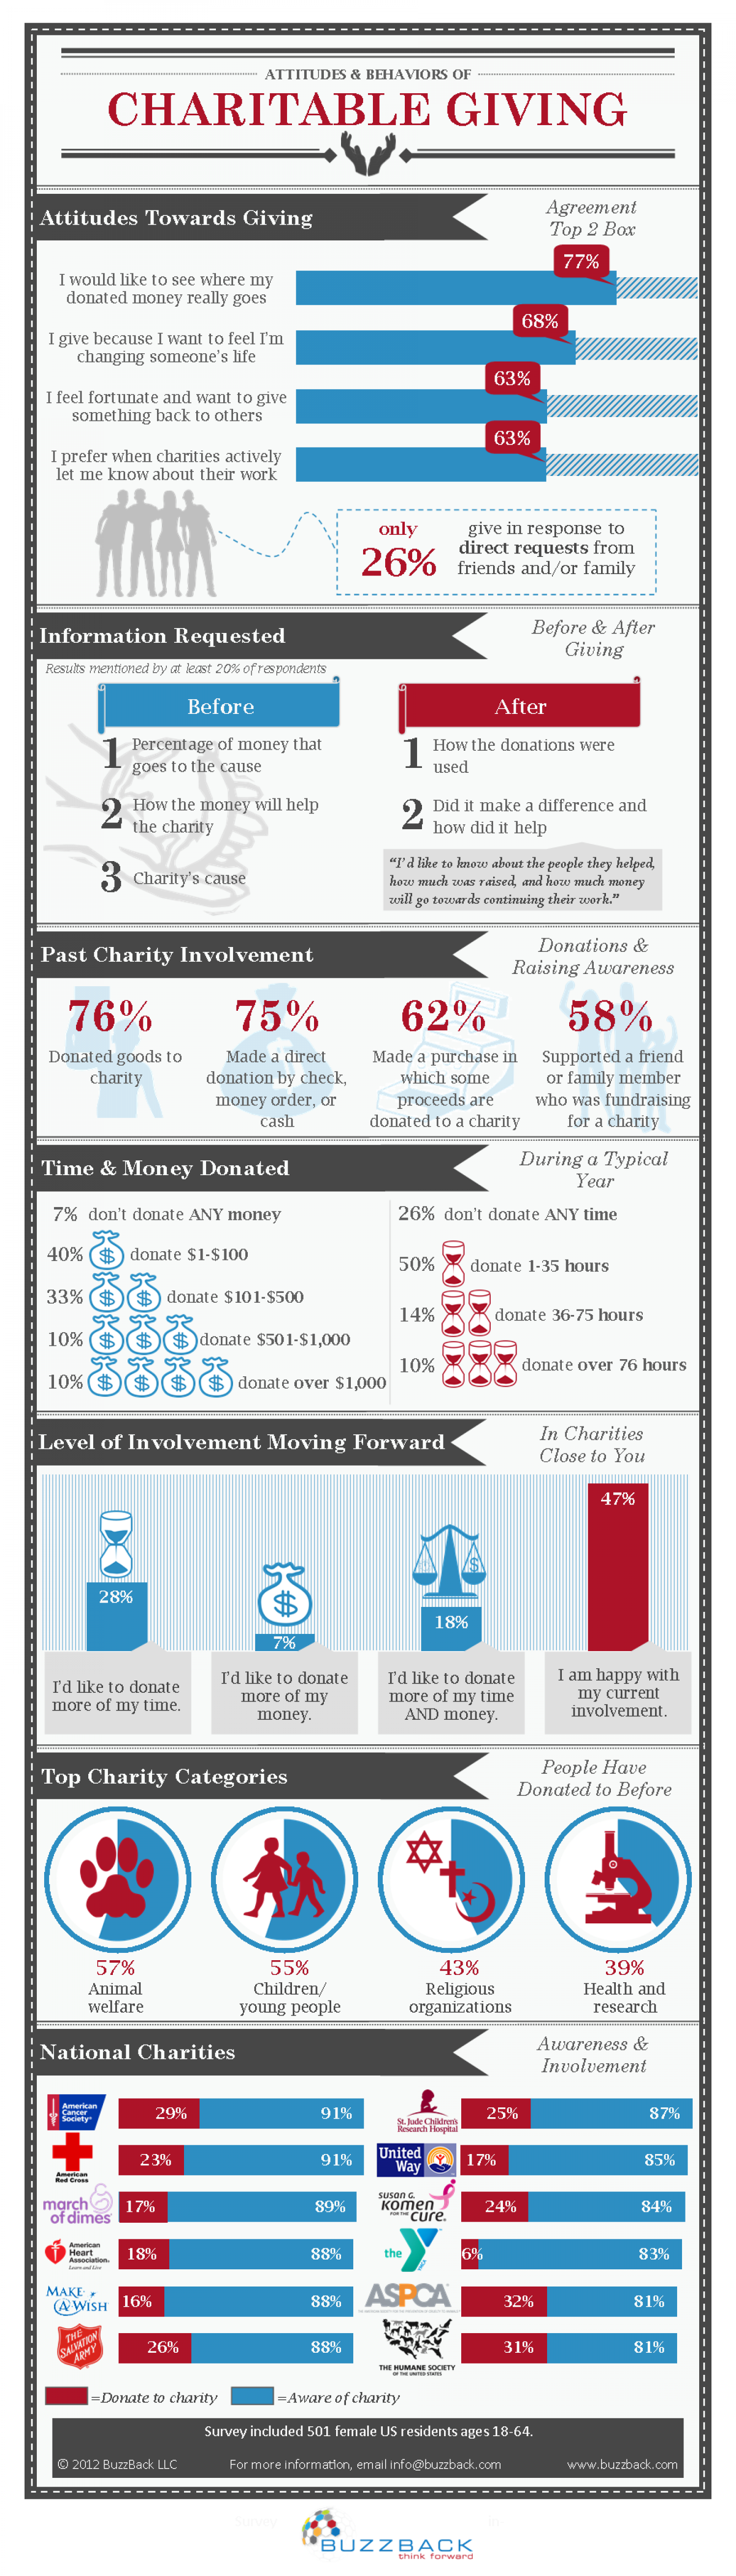 Attitudes & Behaviors of Charitable Giving Infographic